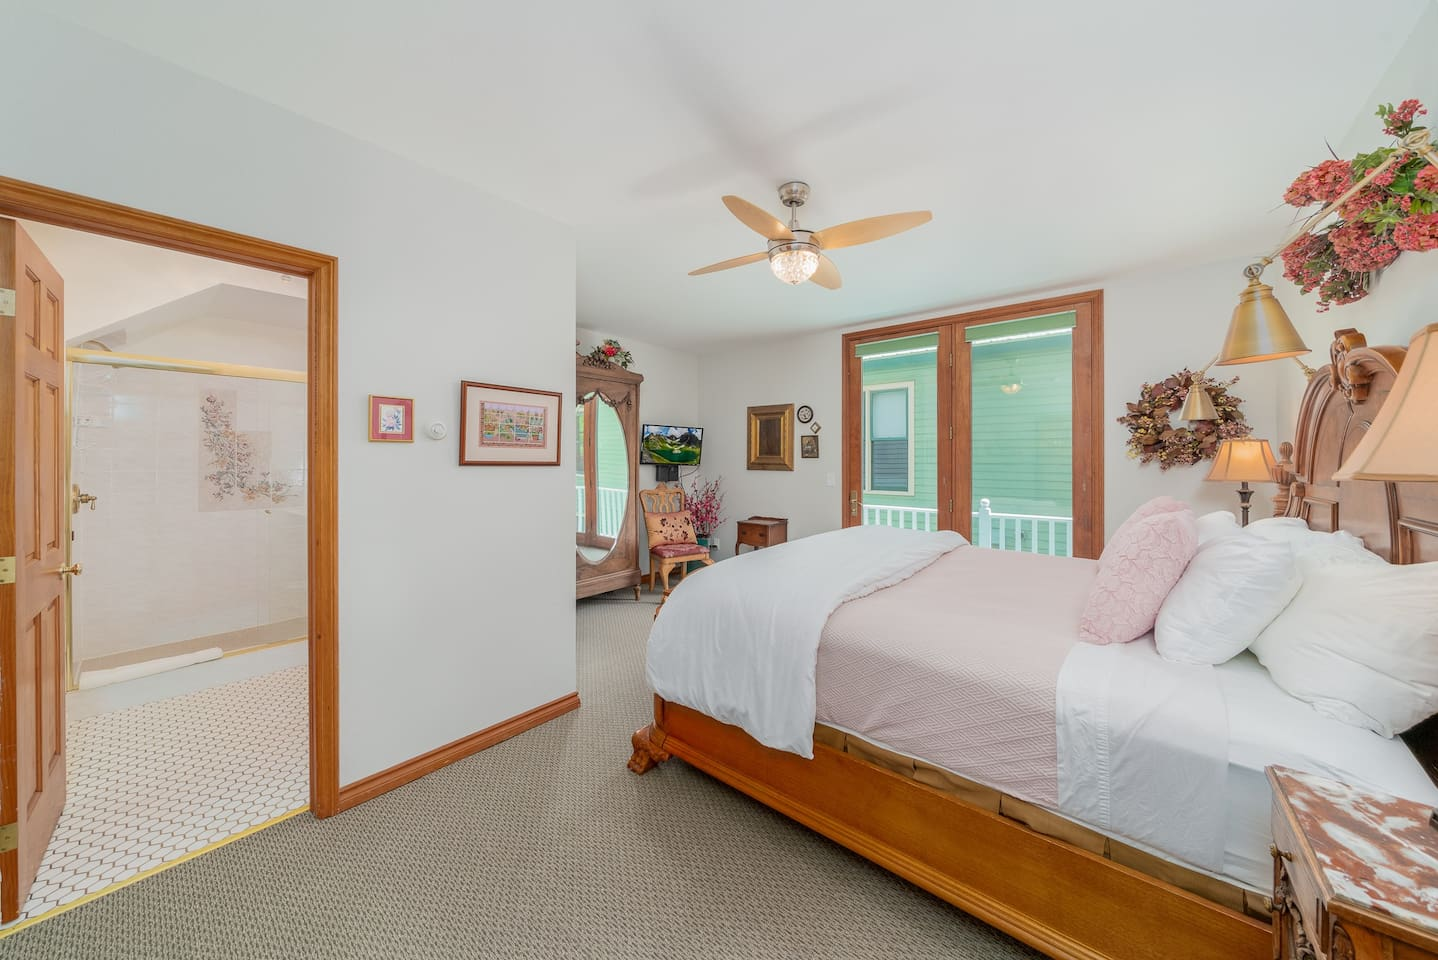 King sized bed with crisp linens. Private balcony, ceiling fan and radiant floor heat